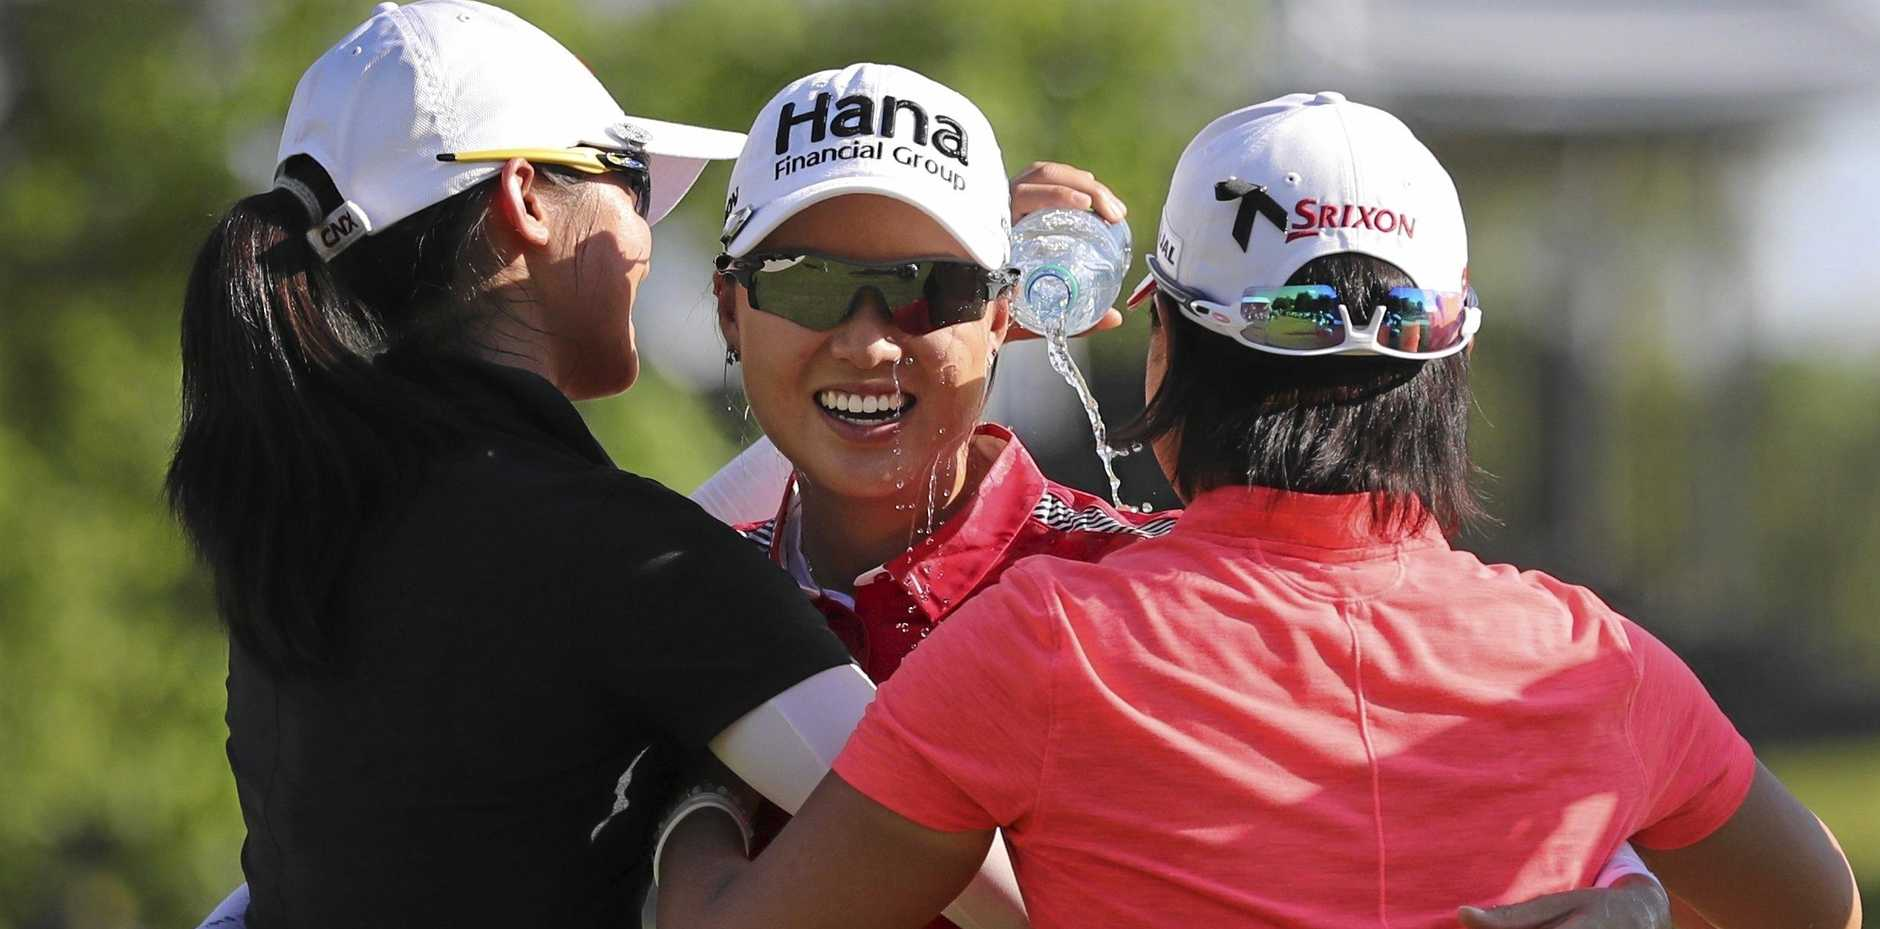 SPLASH FOR CASH: Australian golfer Minjee Lee, centre, is doused with water after winning the LPGA Volvik Championship on the final hole at the Travis Pointe Country Club, in Michigan.